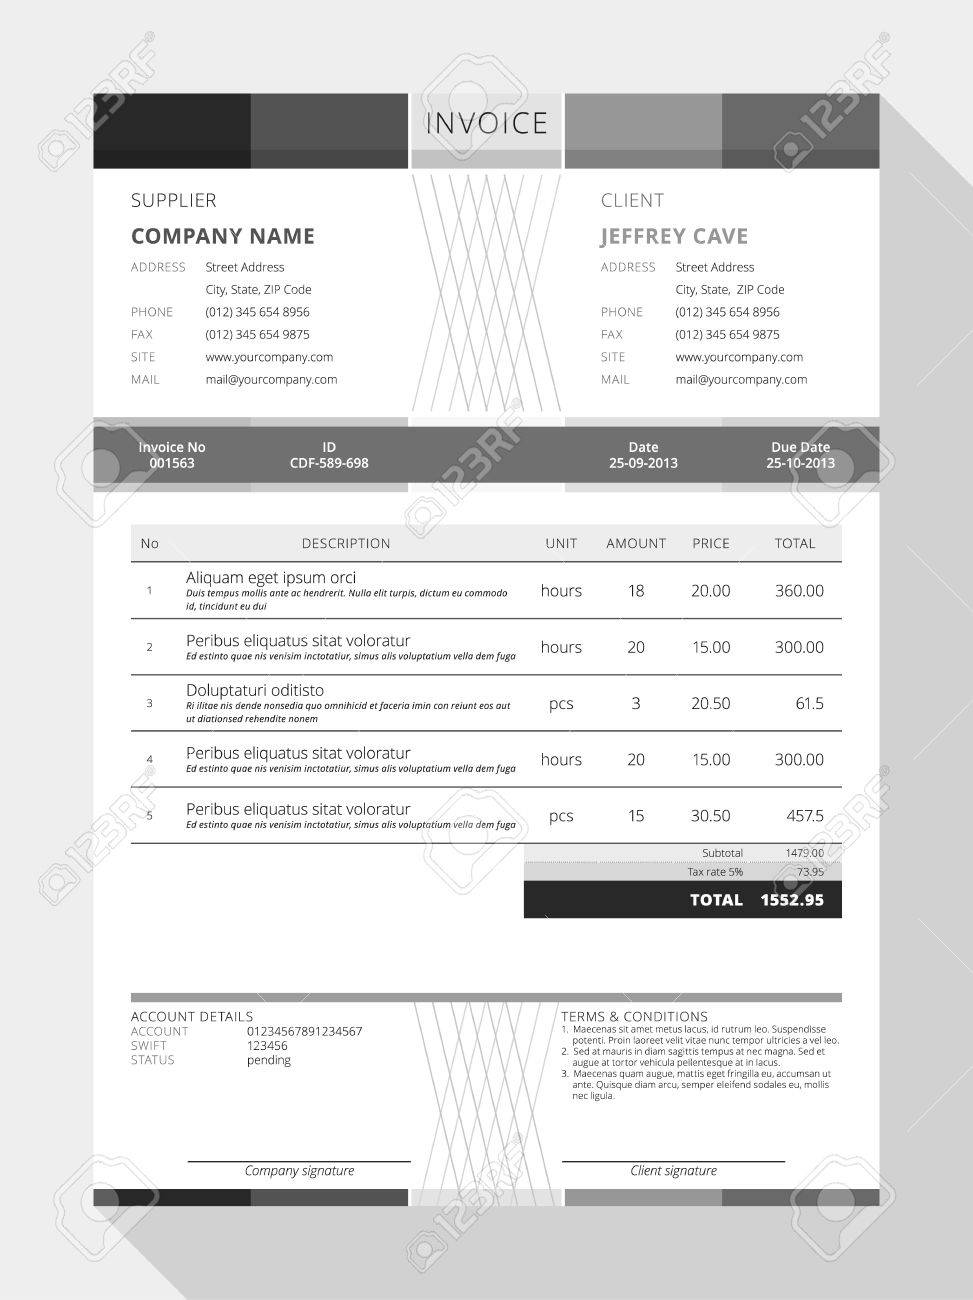 Angkajituus  Terrific Design An Invoice  Professional Graphic Design Invoice  With Magnificent Vector Customizable Invoice Form Template Design Vector   Design An Invoice With Delightful Invoice To Go Help Also Resend Invoice In Addition How To Write A Personal Invoice And Empty Invoice Template As Well As How Do I Pay An Invoice On Paypal Additionally Unpaid Invoices From Happytomco With Angkajituus  Magnificent Design An Invoice  Professional Graphic Design Invoice  With Delightful Vector Customizable Invoice Form Template Design Vector   Design An Invoice And Terrific Invoice To Go Help Also Resend Invoice In Addition How To Write A Personal Invoice From Happytomco